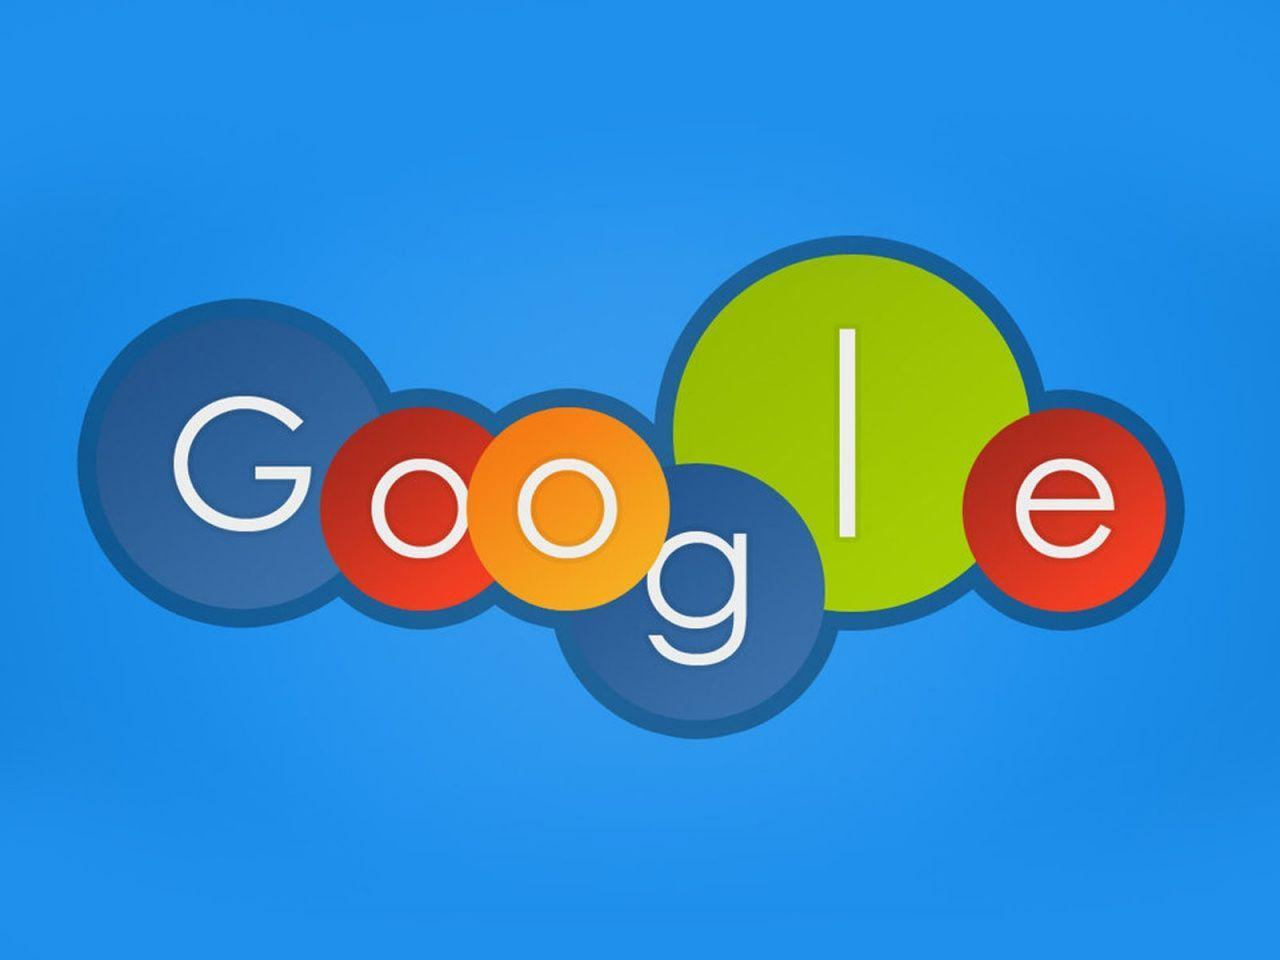 Google Logo Wallpapers - Wallpaper Cave